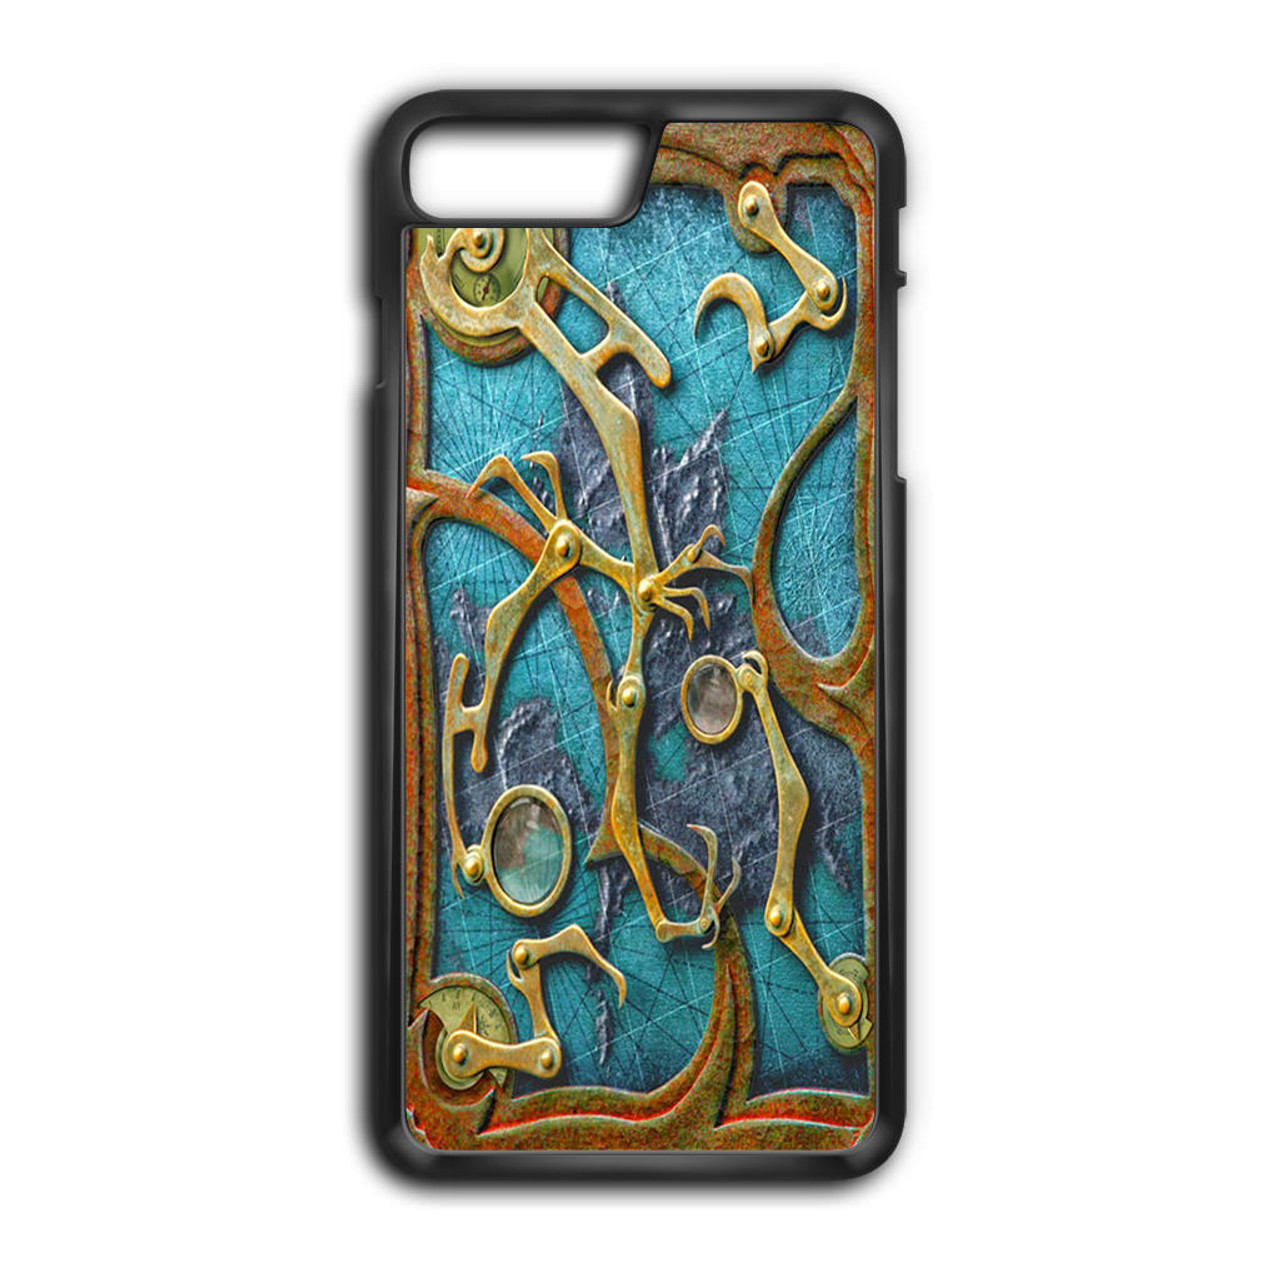 94d219e53724 Steampunk iPhone 7 Plus Case - CASESHUNTER